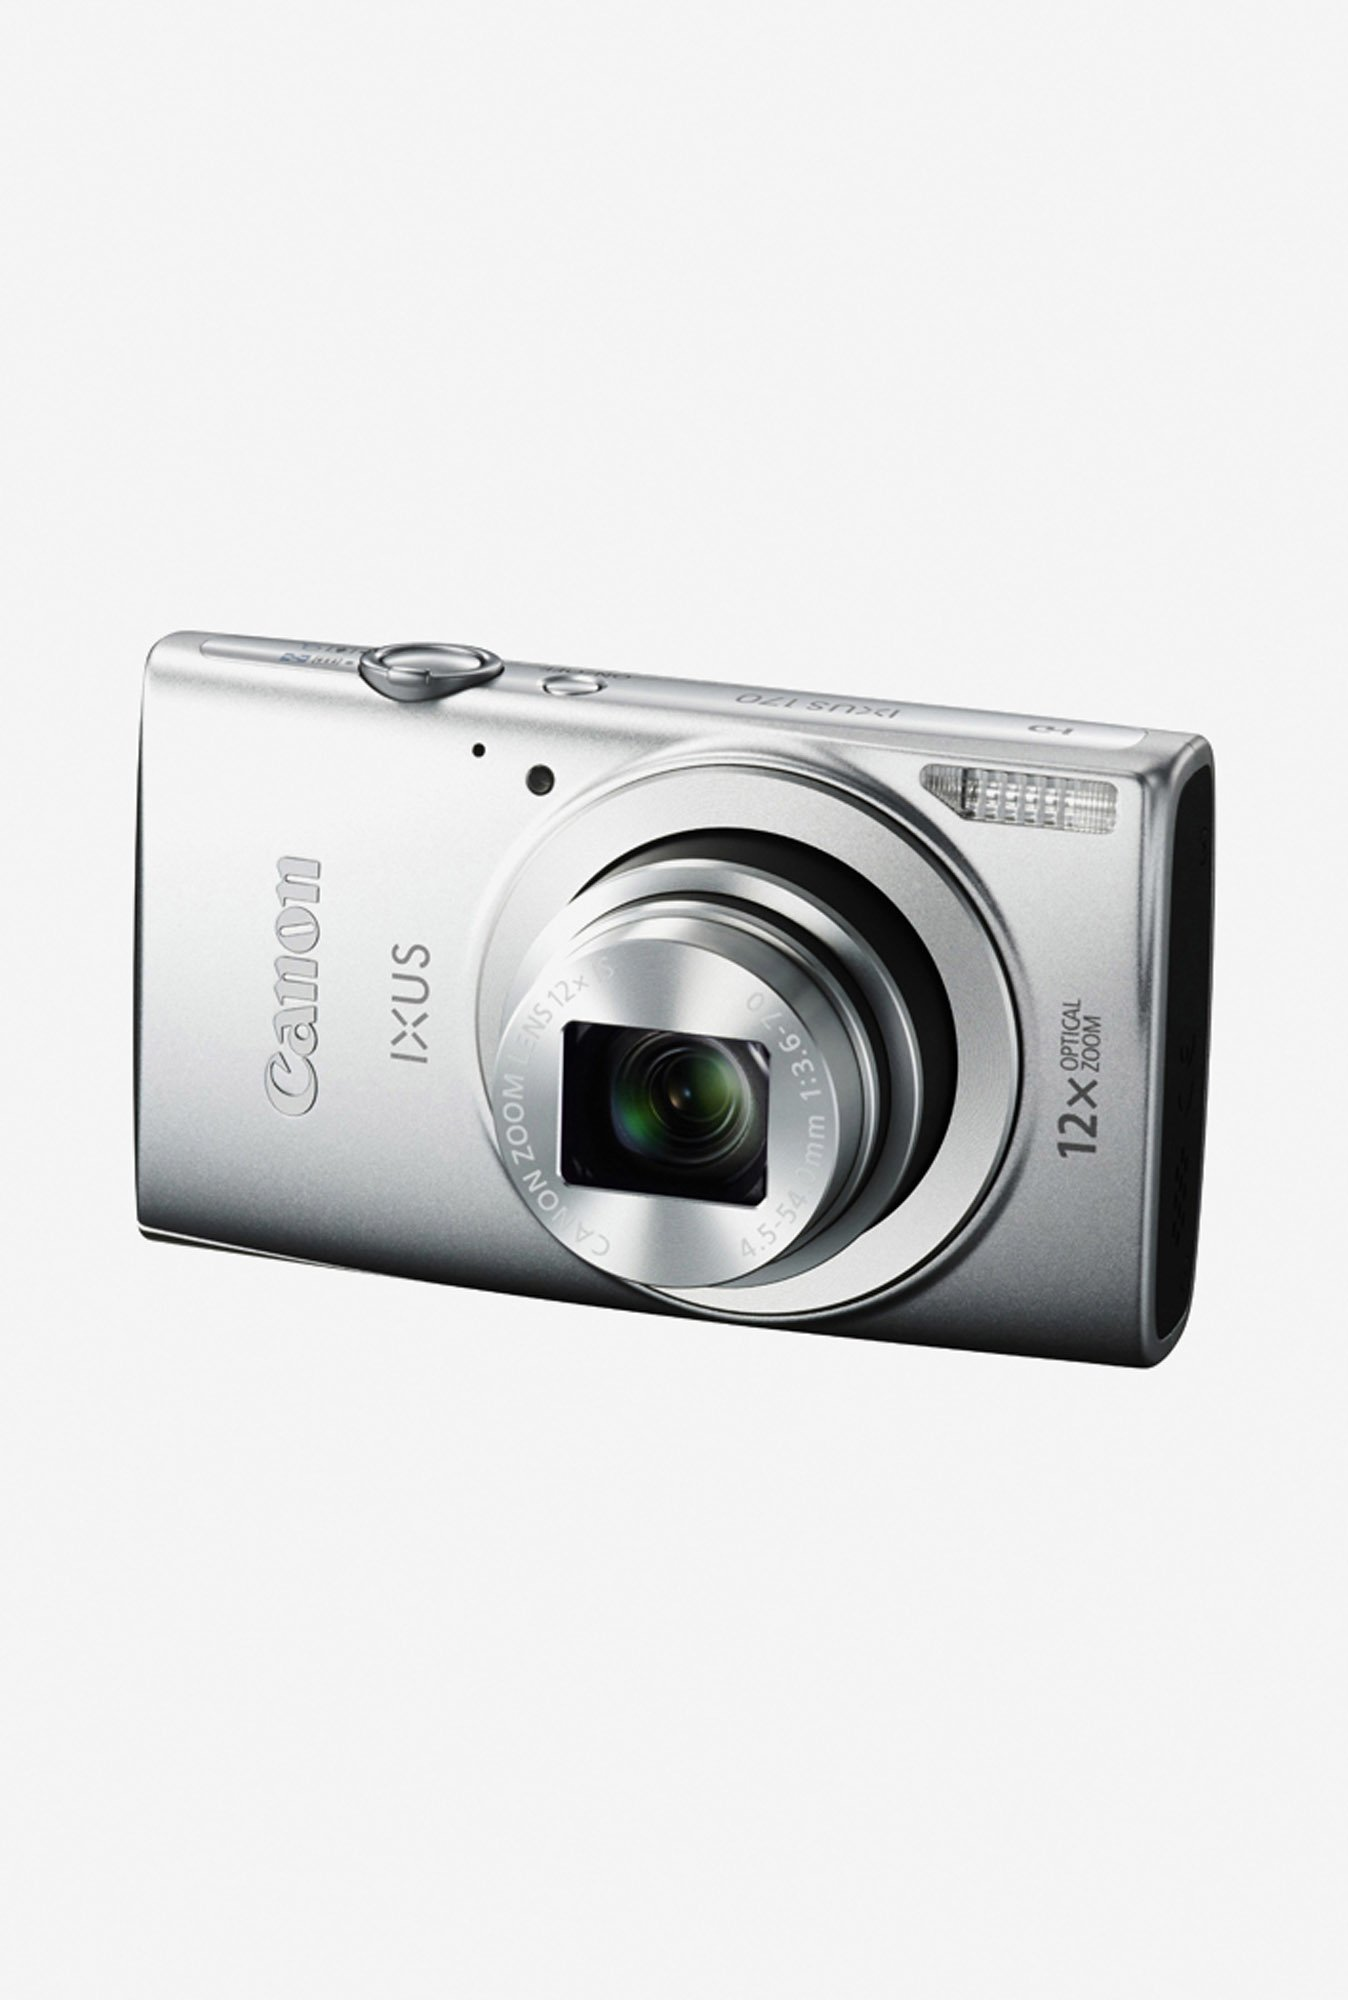 Canon IXUS 170 20 MP Point & Shoot Camera Silver